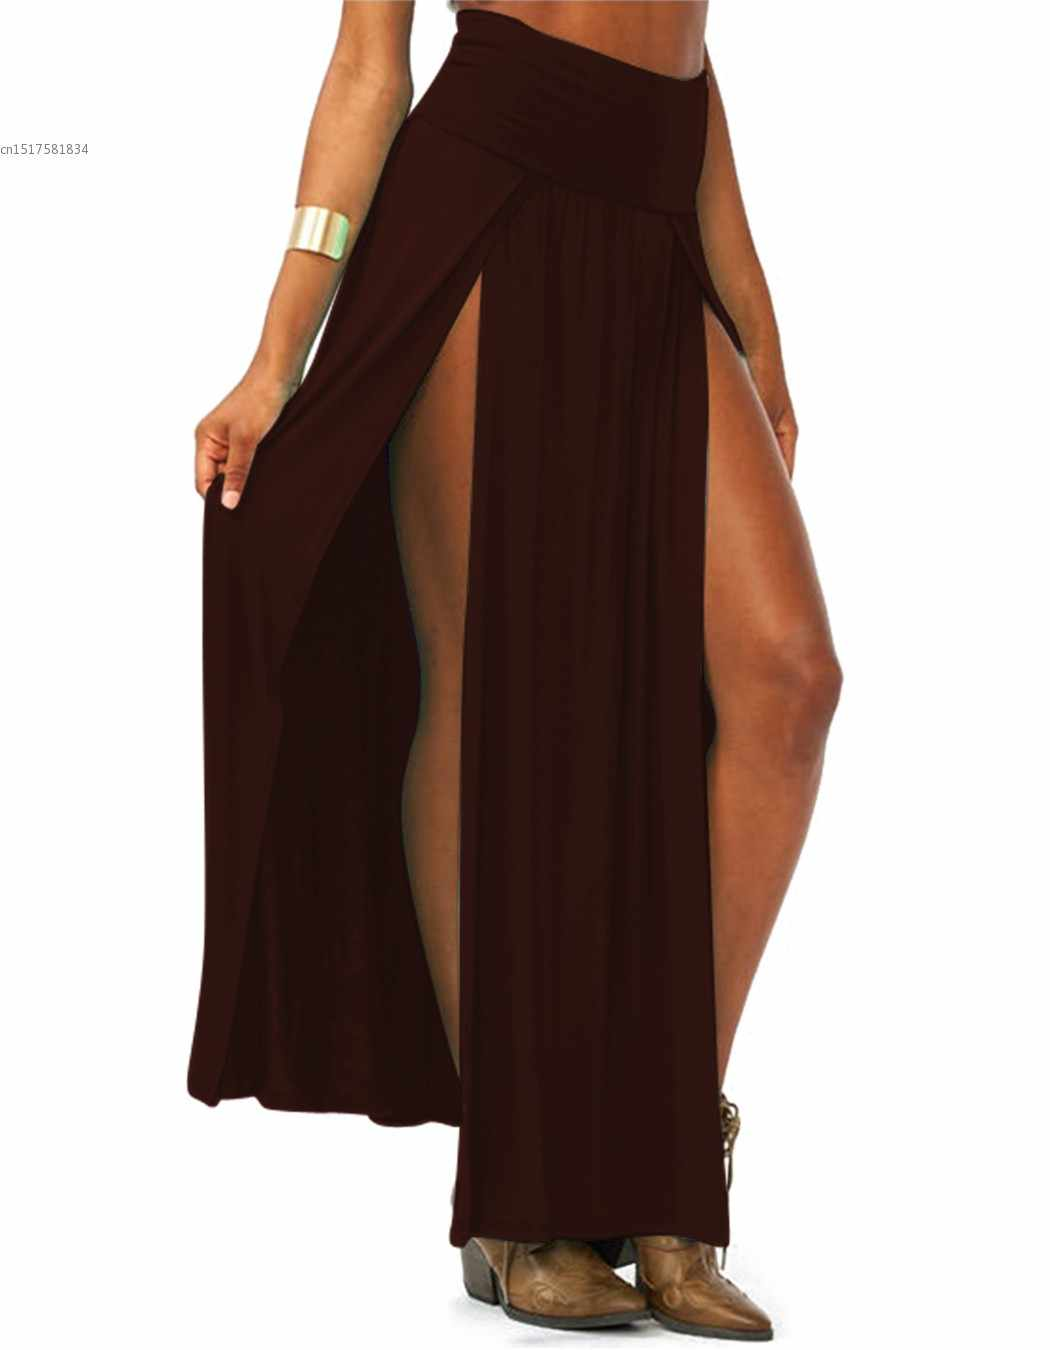 abb9b56bdc1e4 2019 New Arrival High Waisted Sexy Womens Double Slits Summer Solid Long  Maxi Skirt Wholesale 51